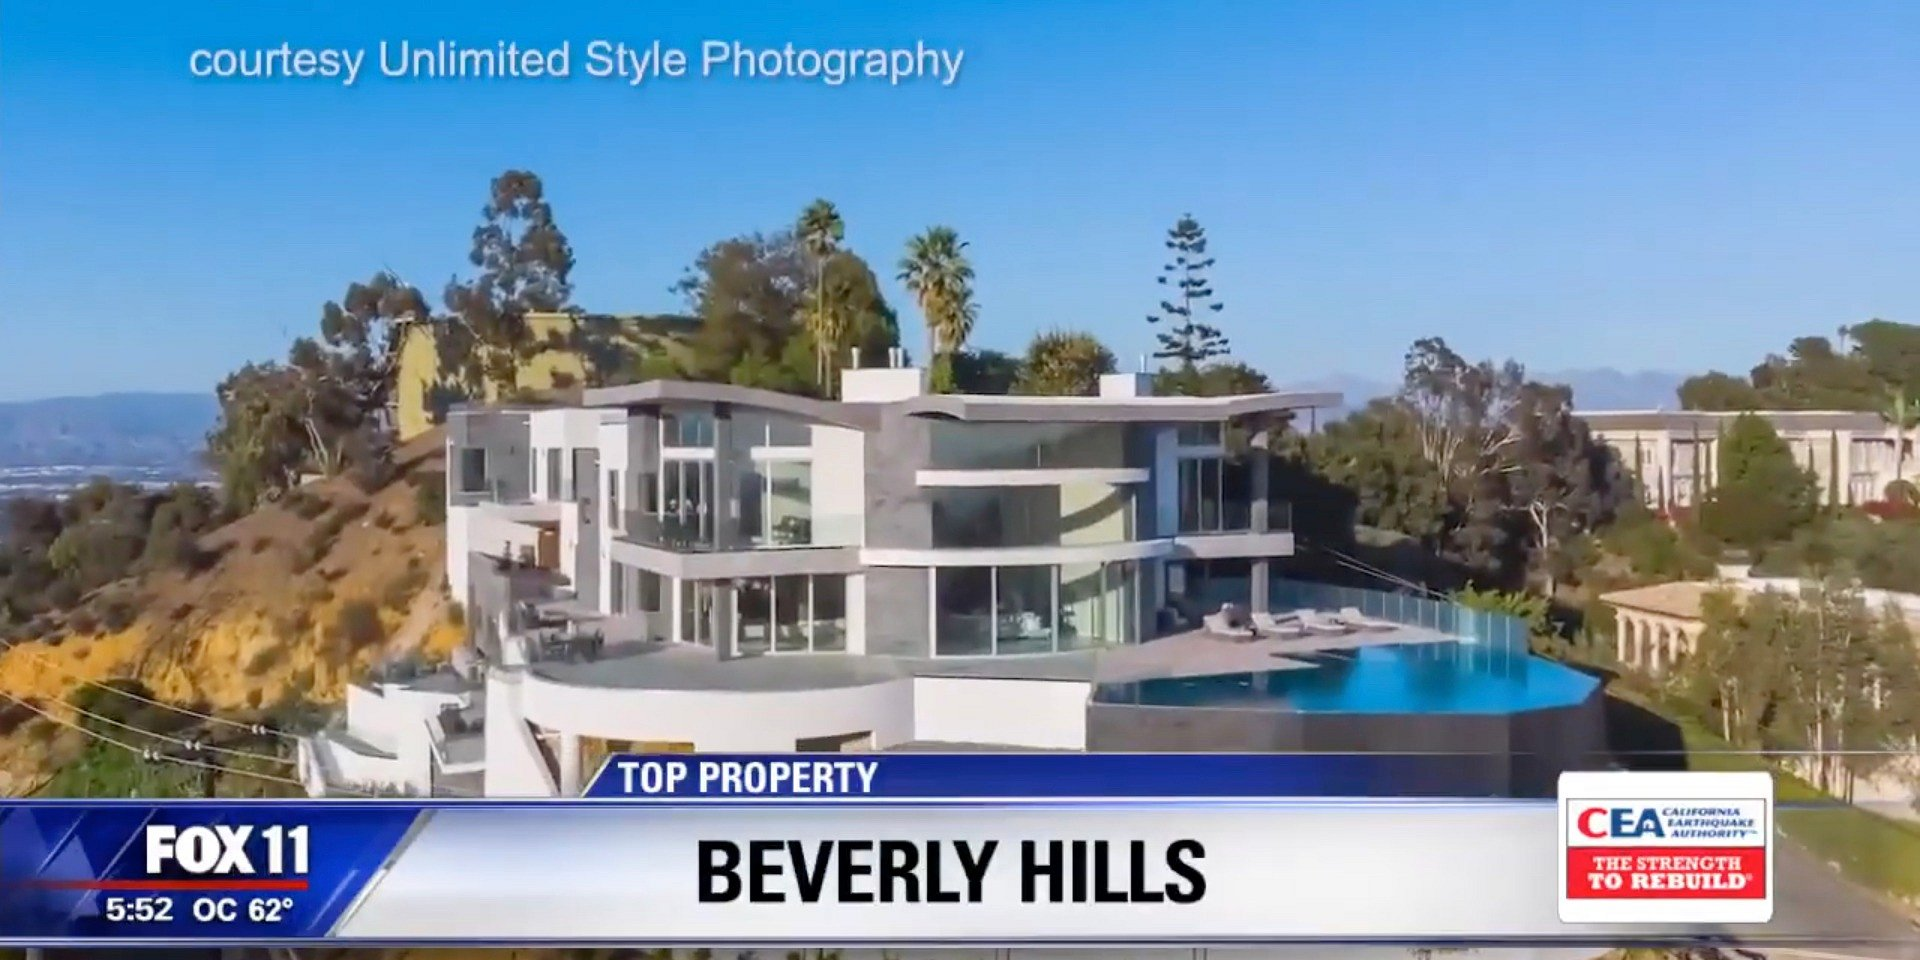 Fox 11's Top Property Showcases 2710 Bowmont Dr